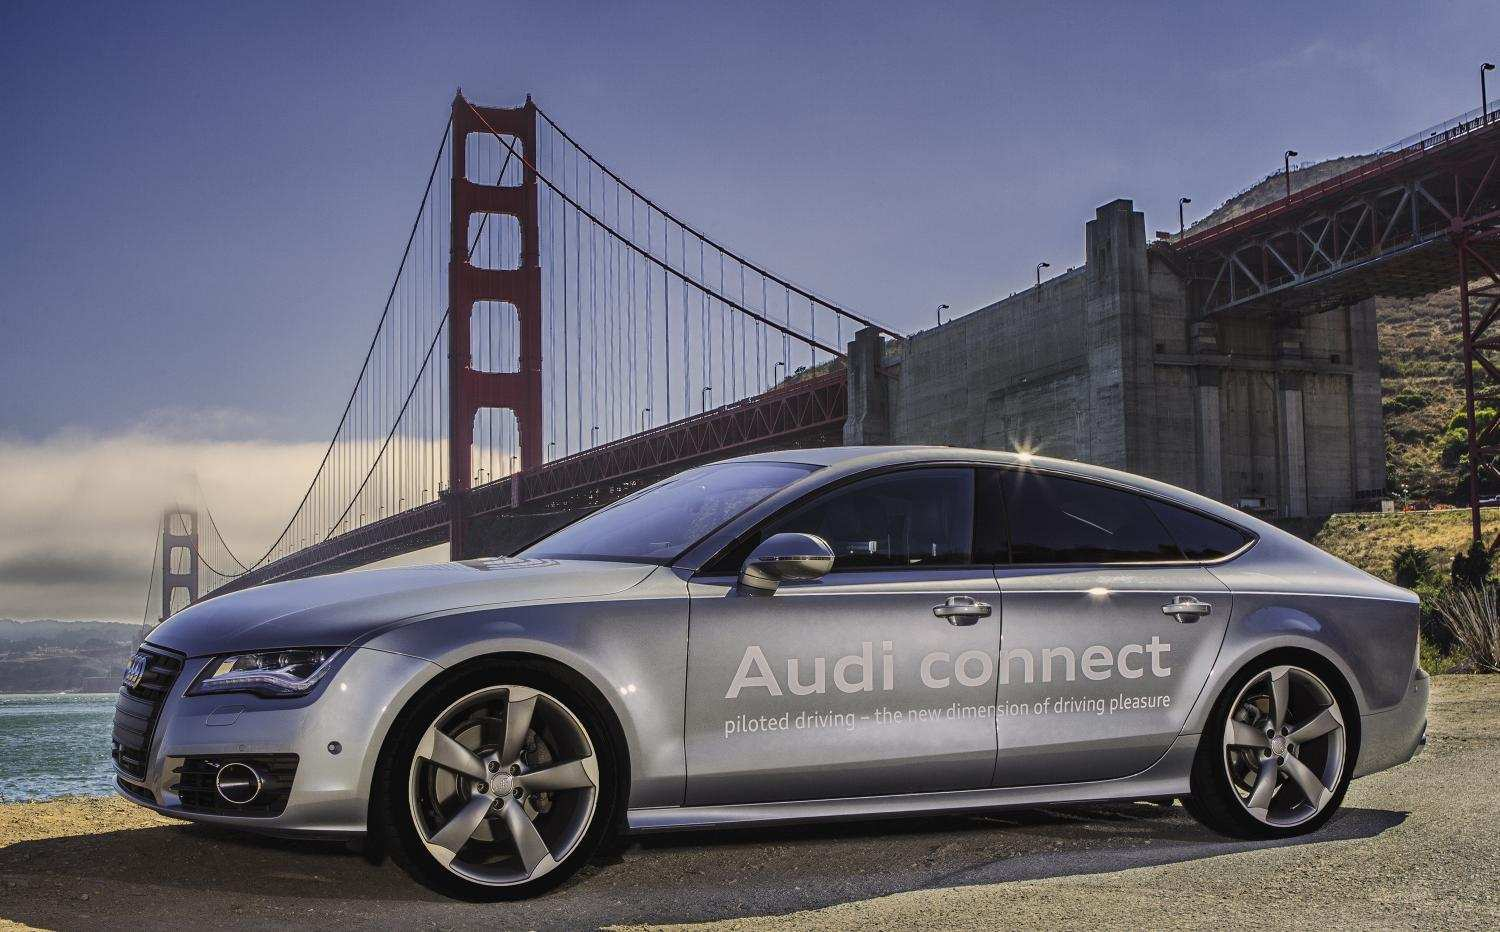 86 Concept of Audi 2020 Self Driving Car Style with Audi 2020 Self Driving Car